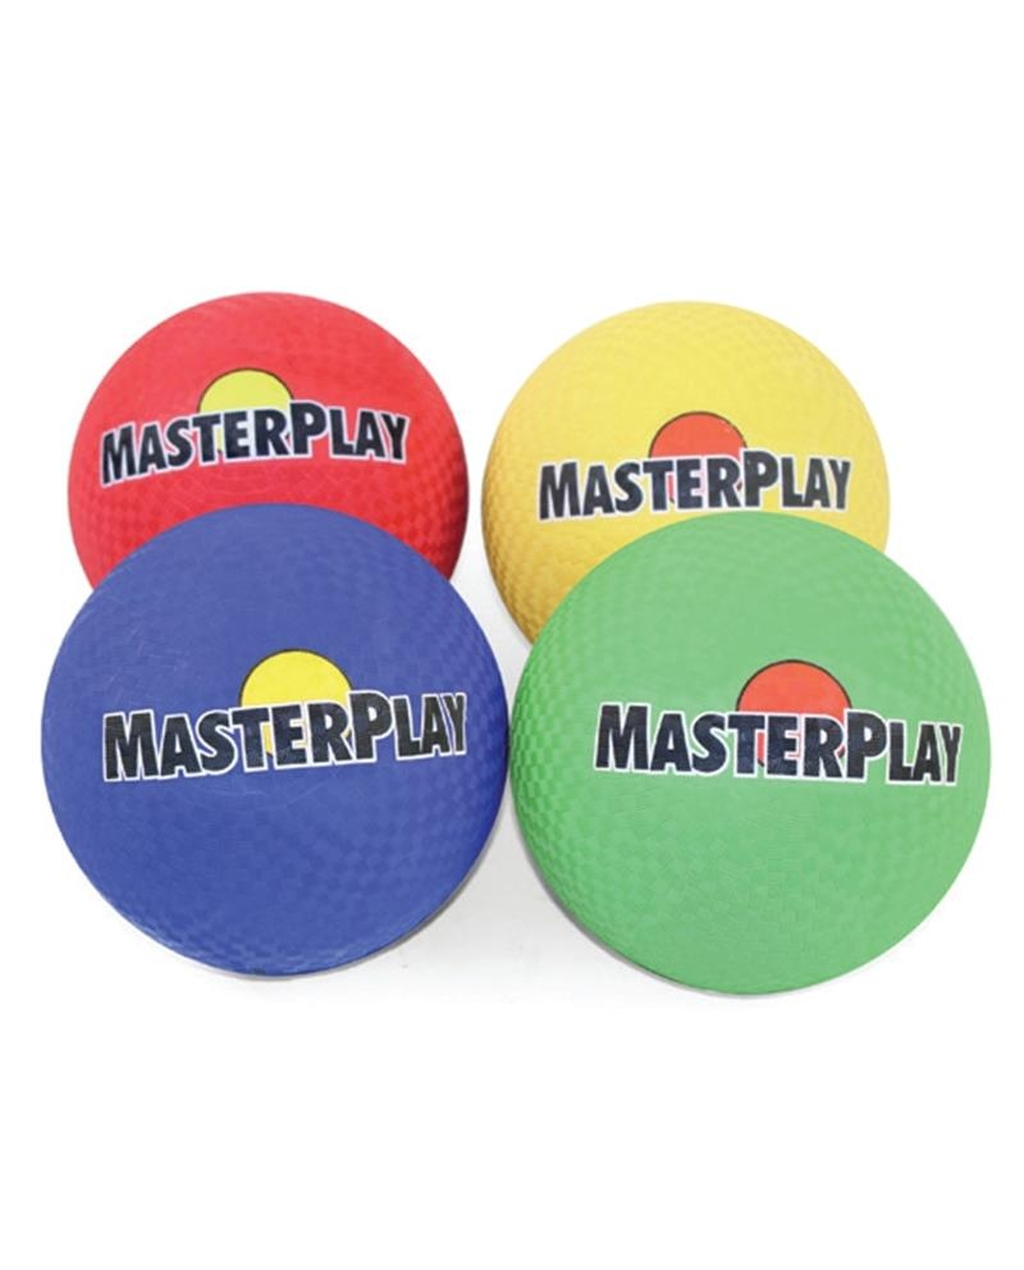 Masterplay Playground Balls